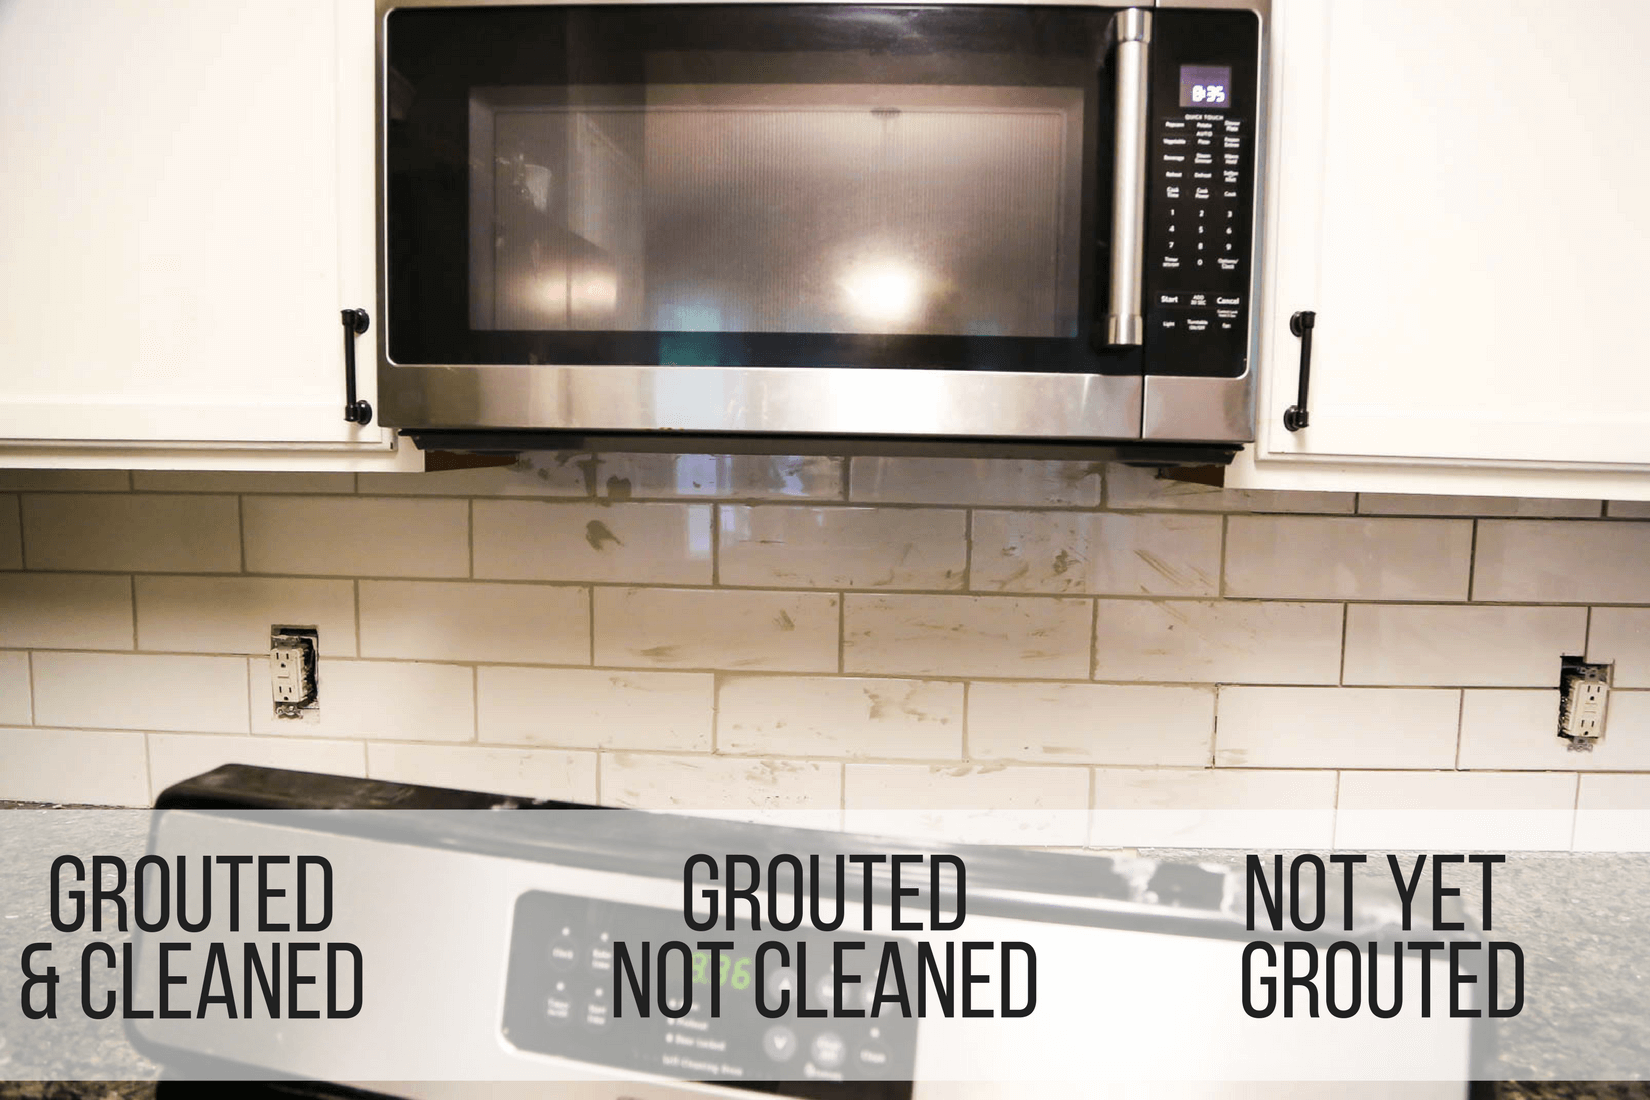 Grouted vs. ungrouted tile